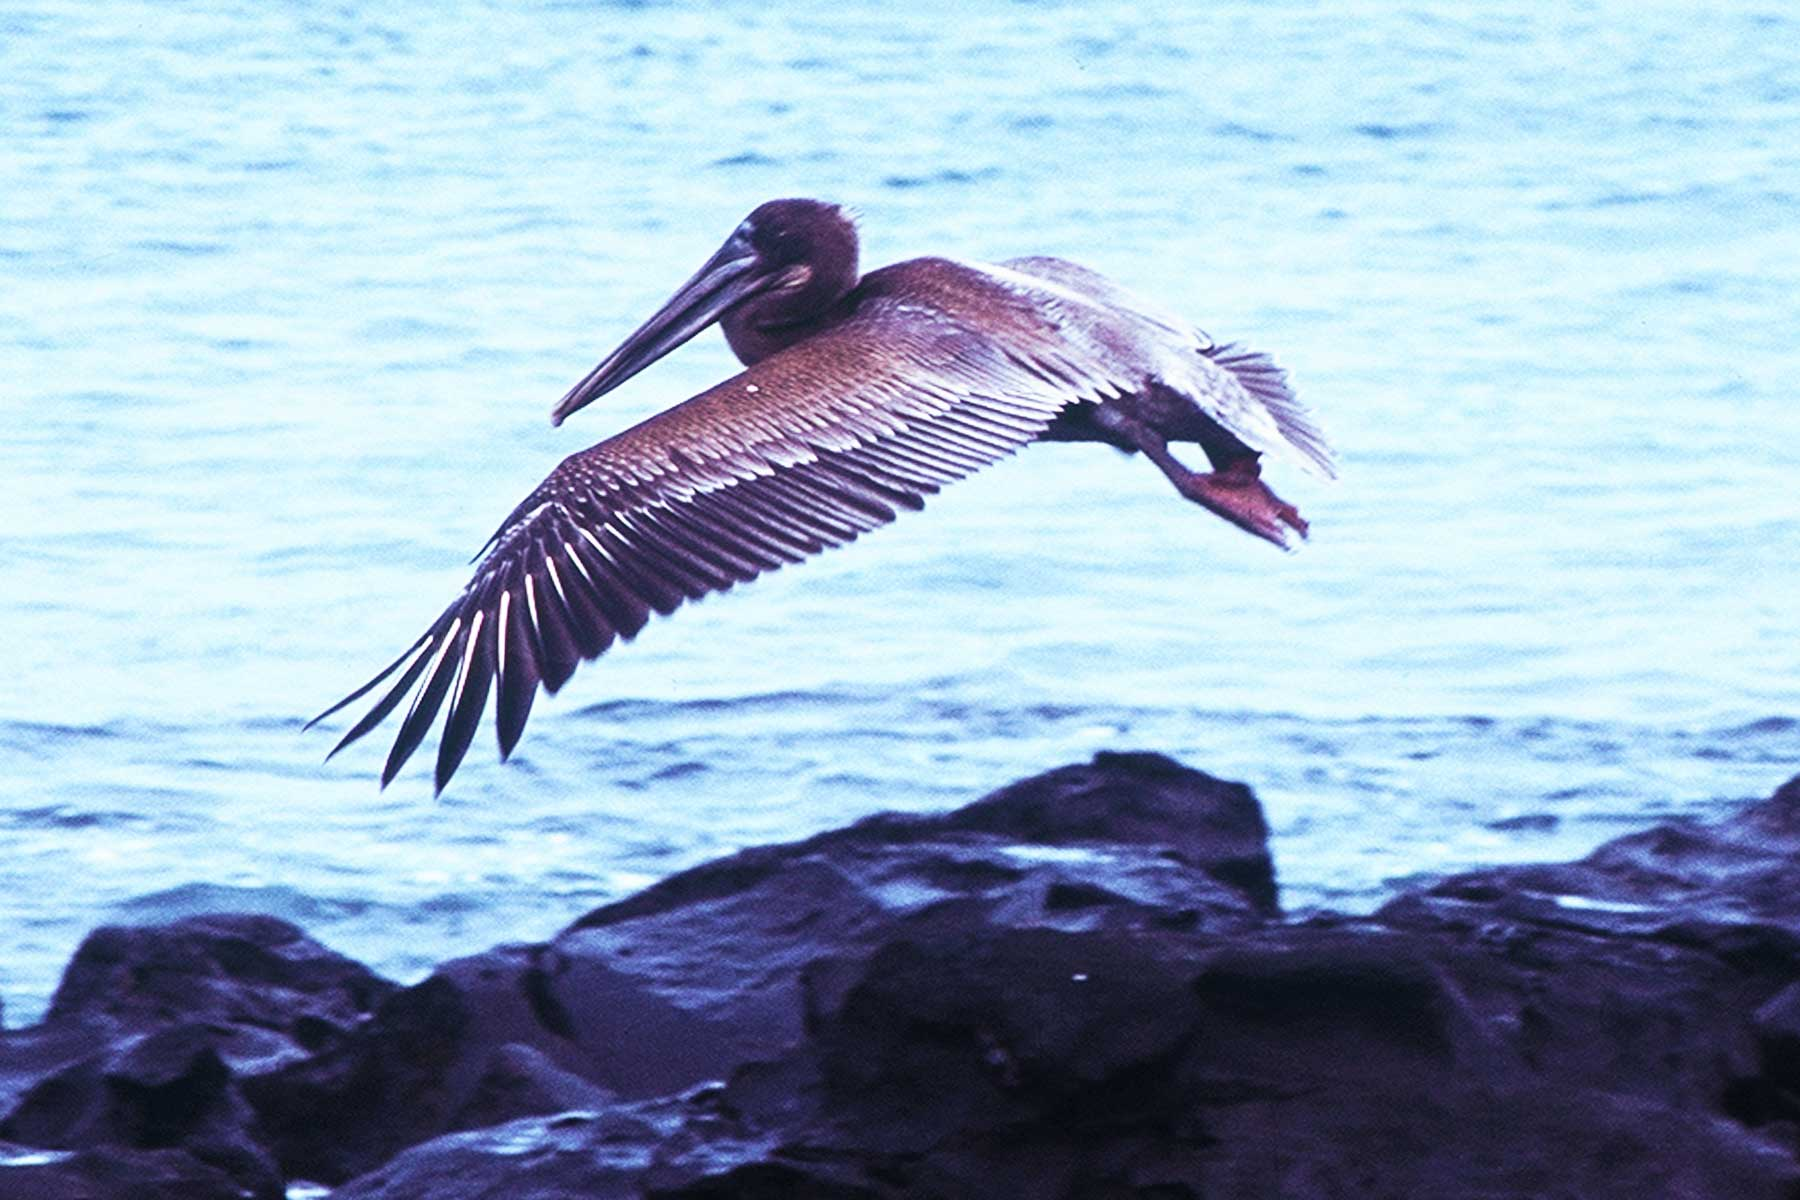 Galapagos Brown Pelican | Darwin | Dr Steven A Martin | Study Abroad Photo Journal | Environmental Studies